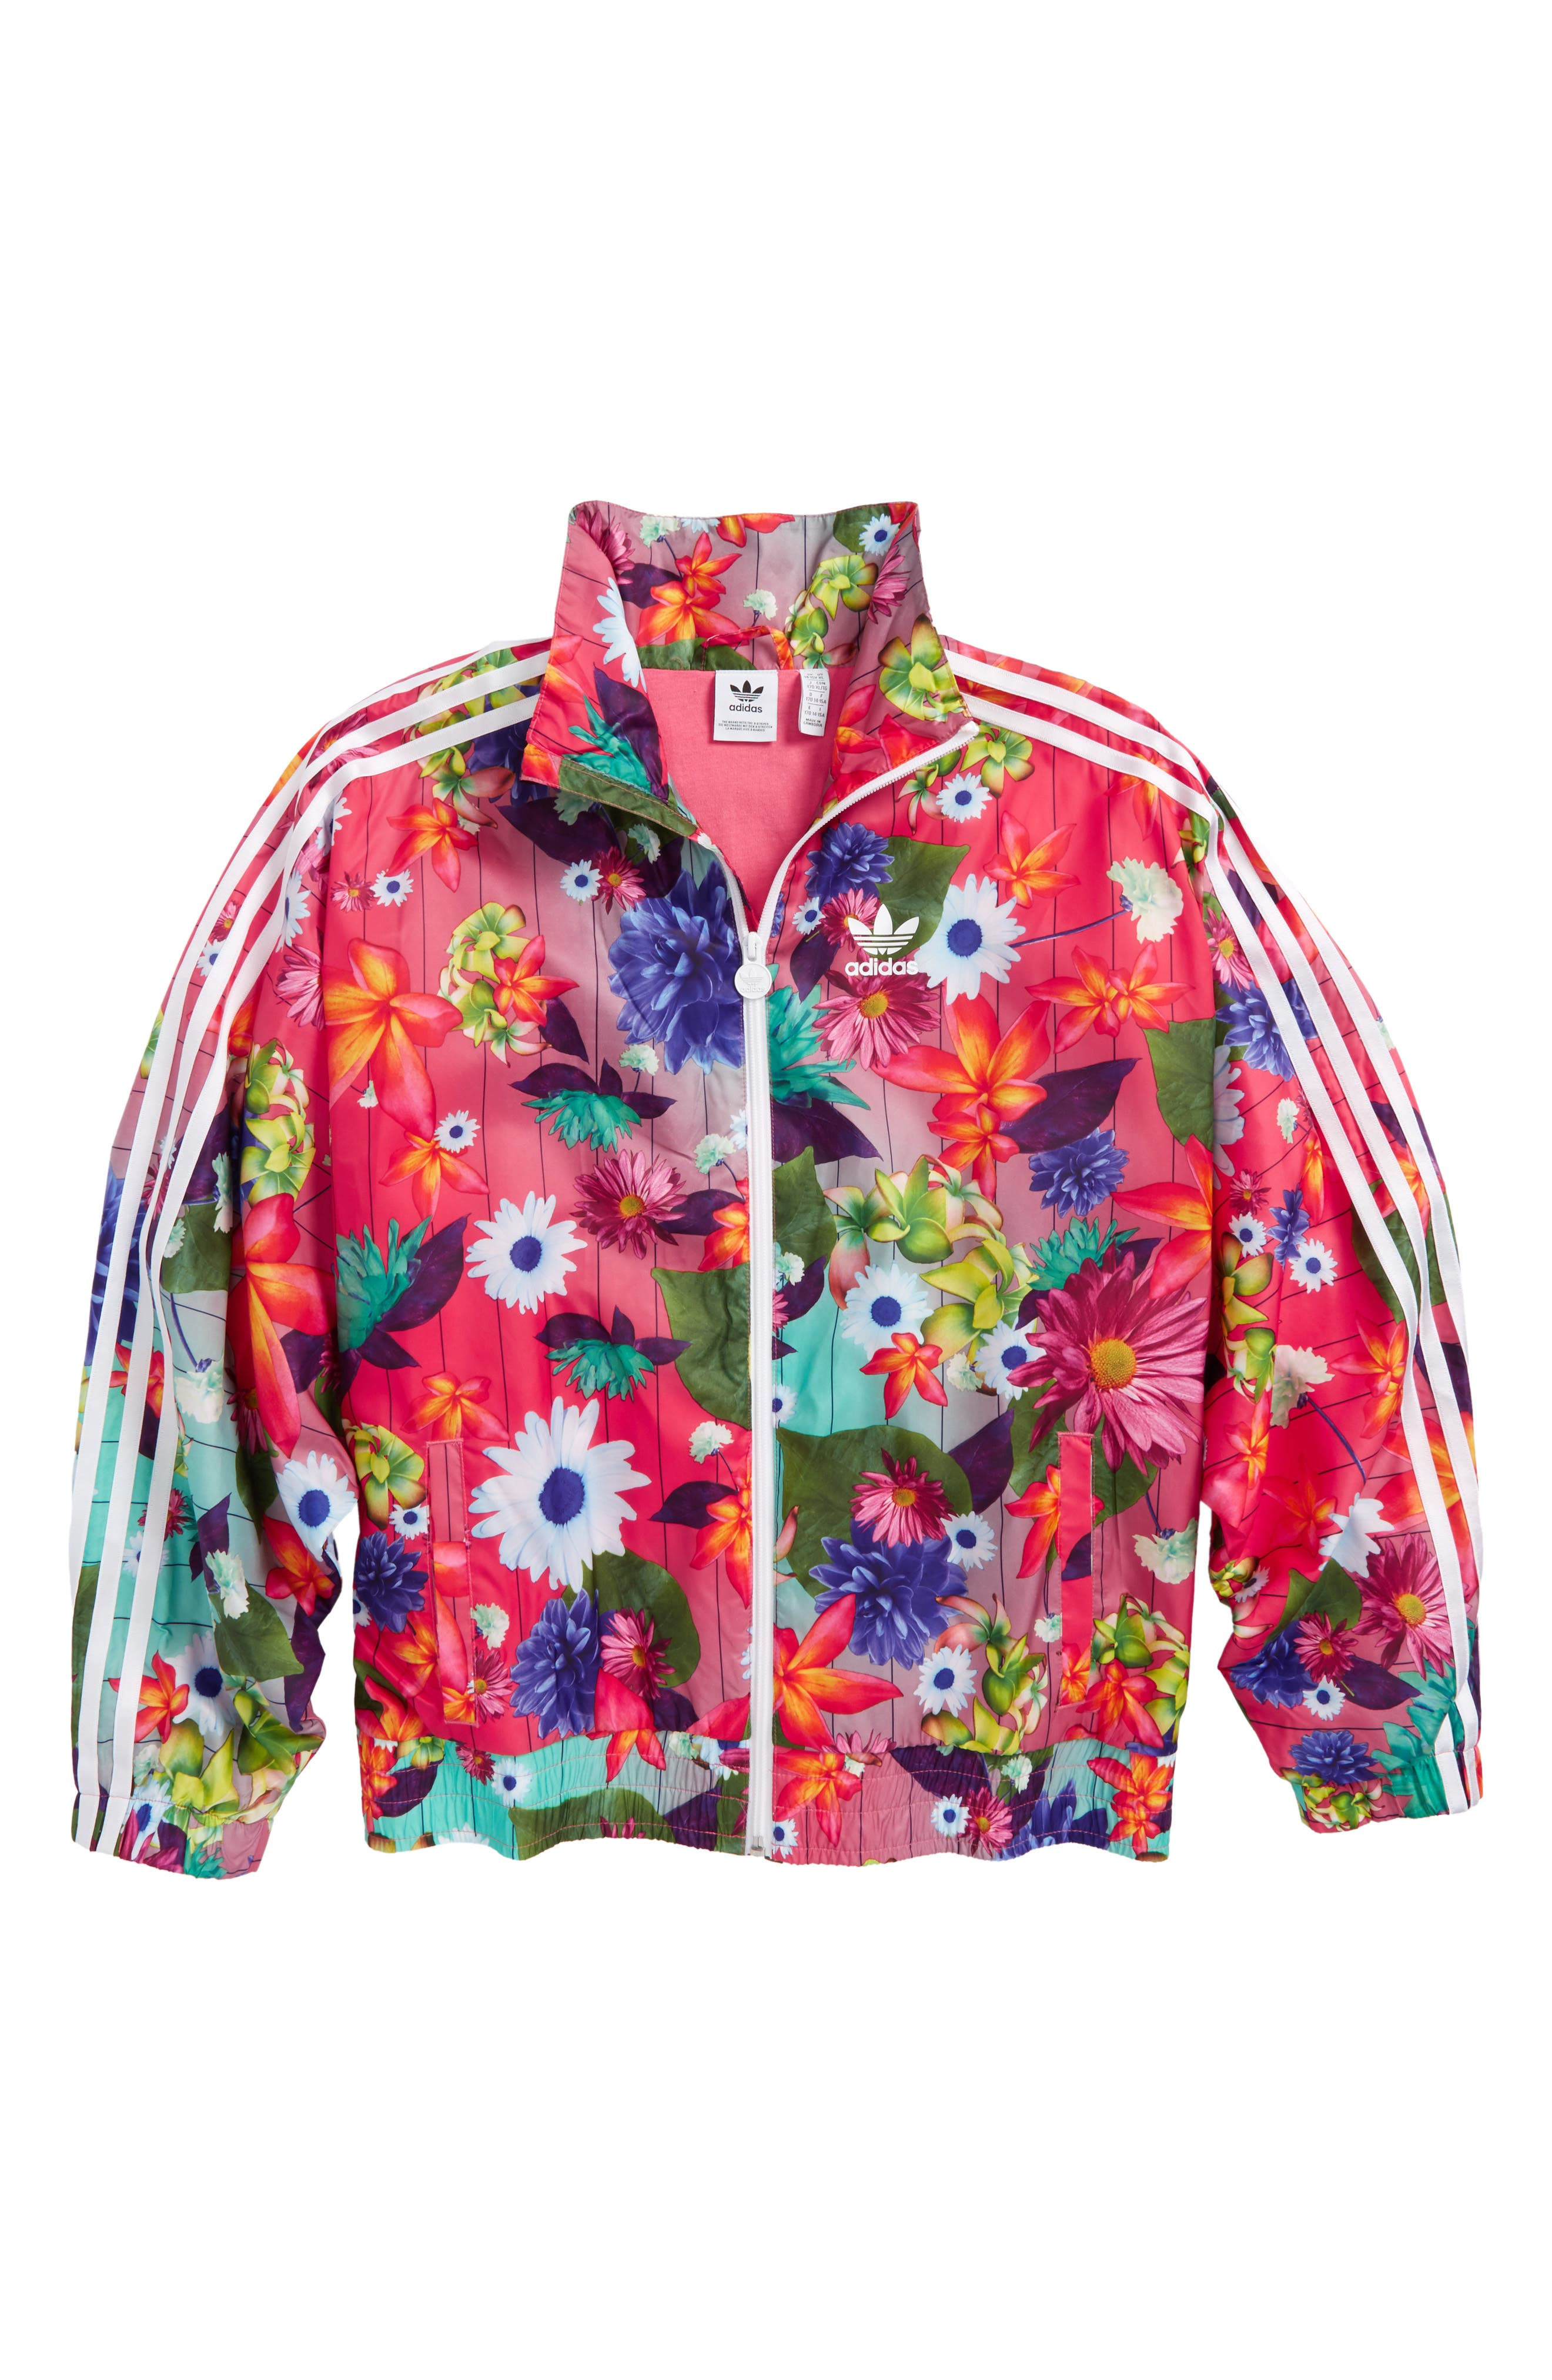 adidas Graphic Windbreaker Jacket,                         Main,                         color, 650